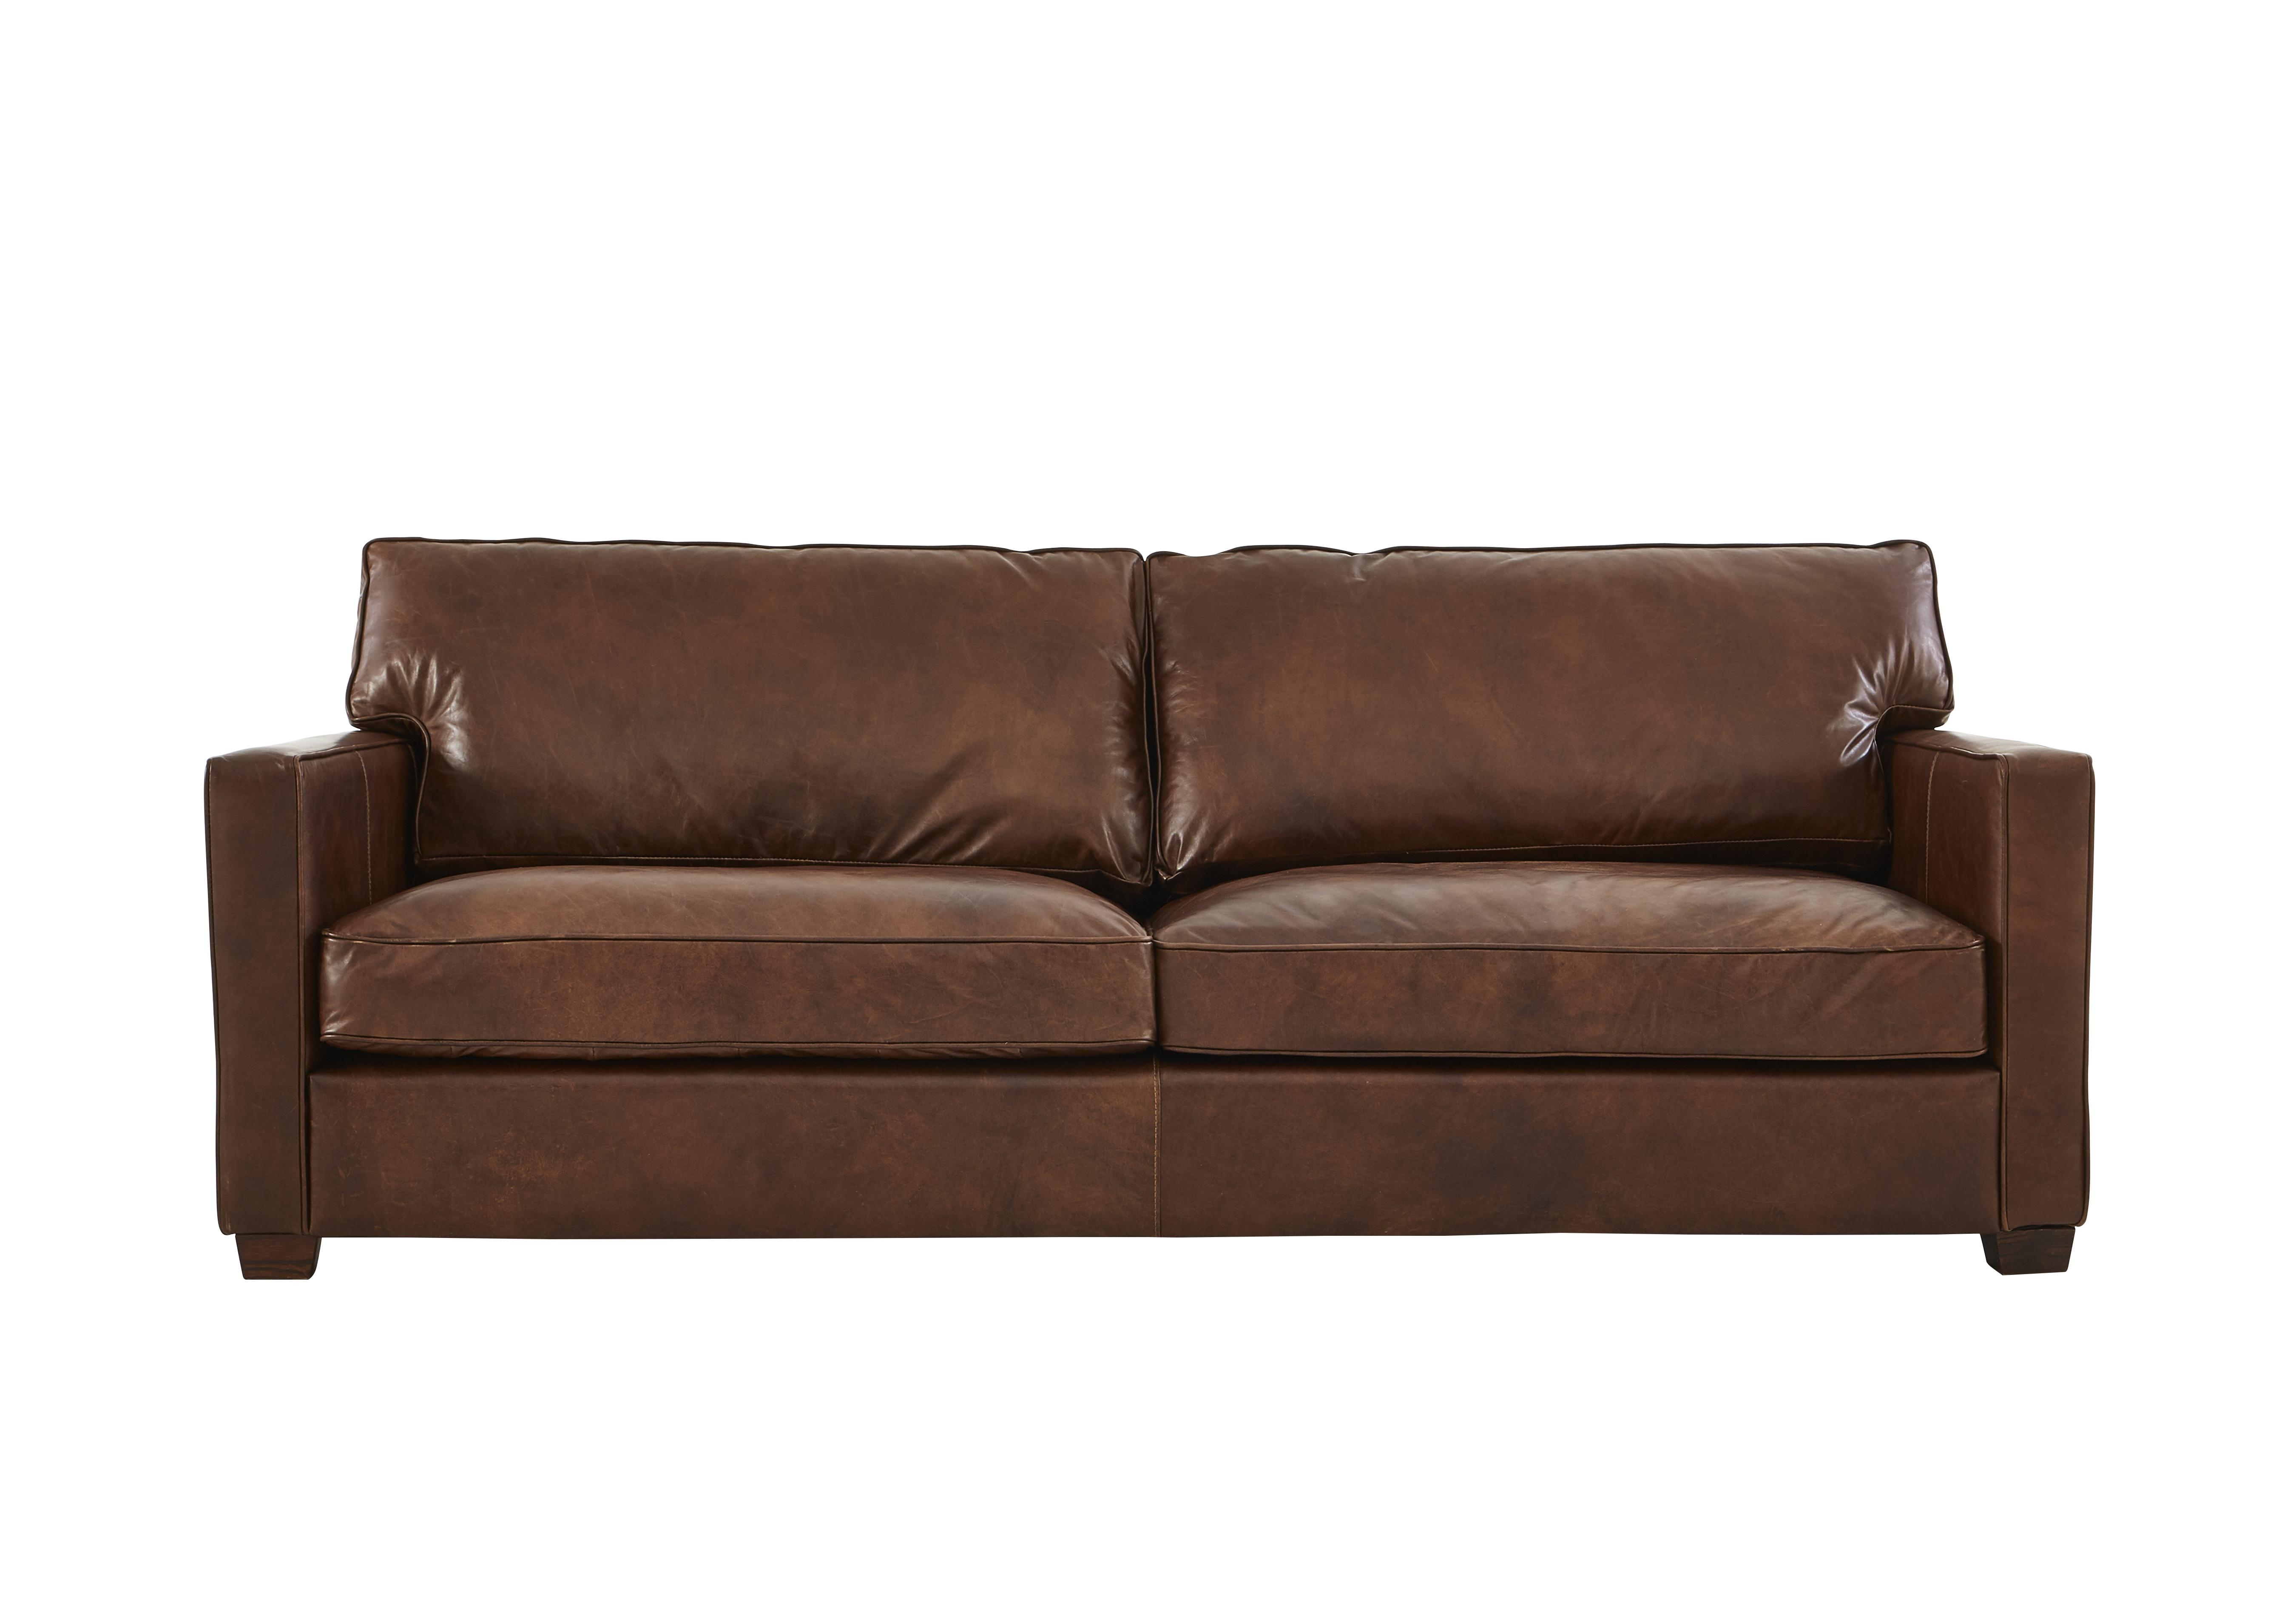 - Fulham Broadway 3 Seater Leather Sofa - Halo - Furniture Village